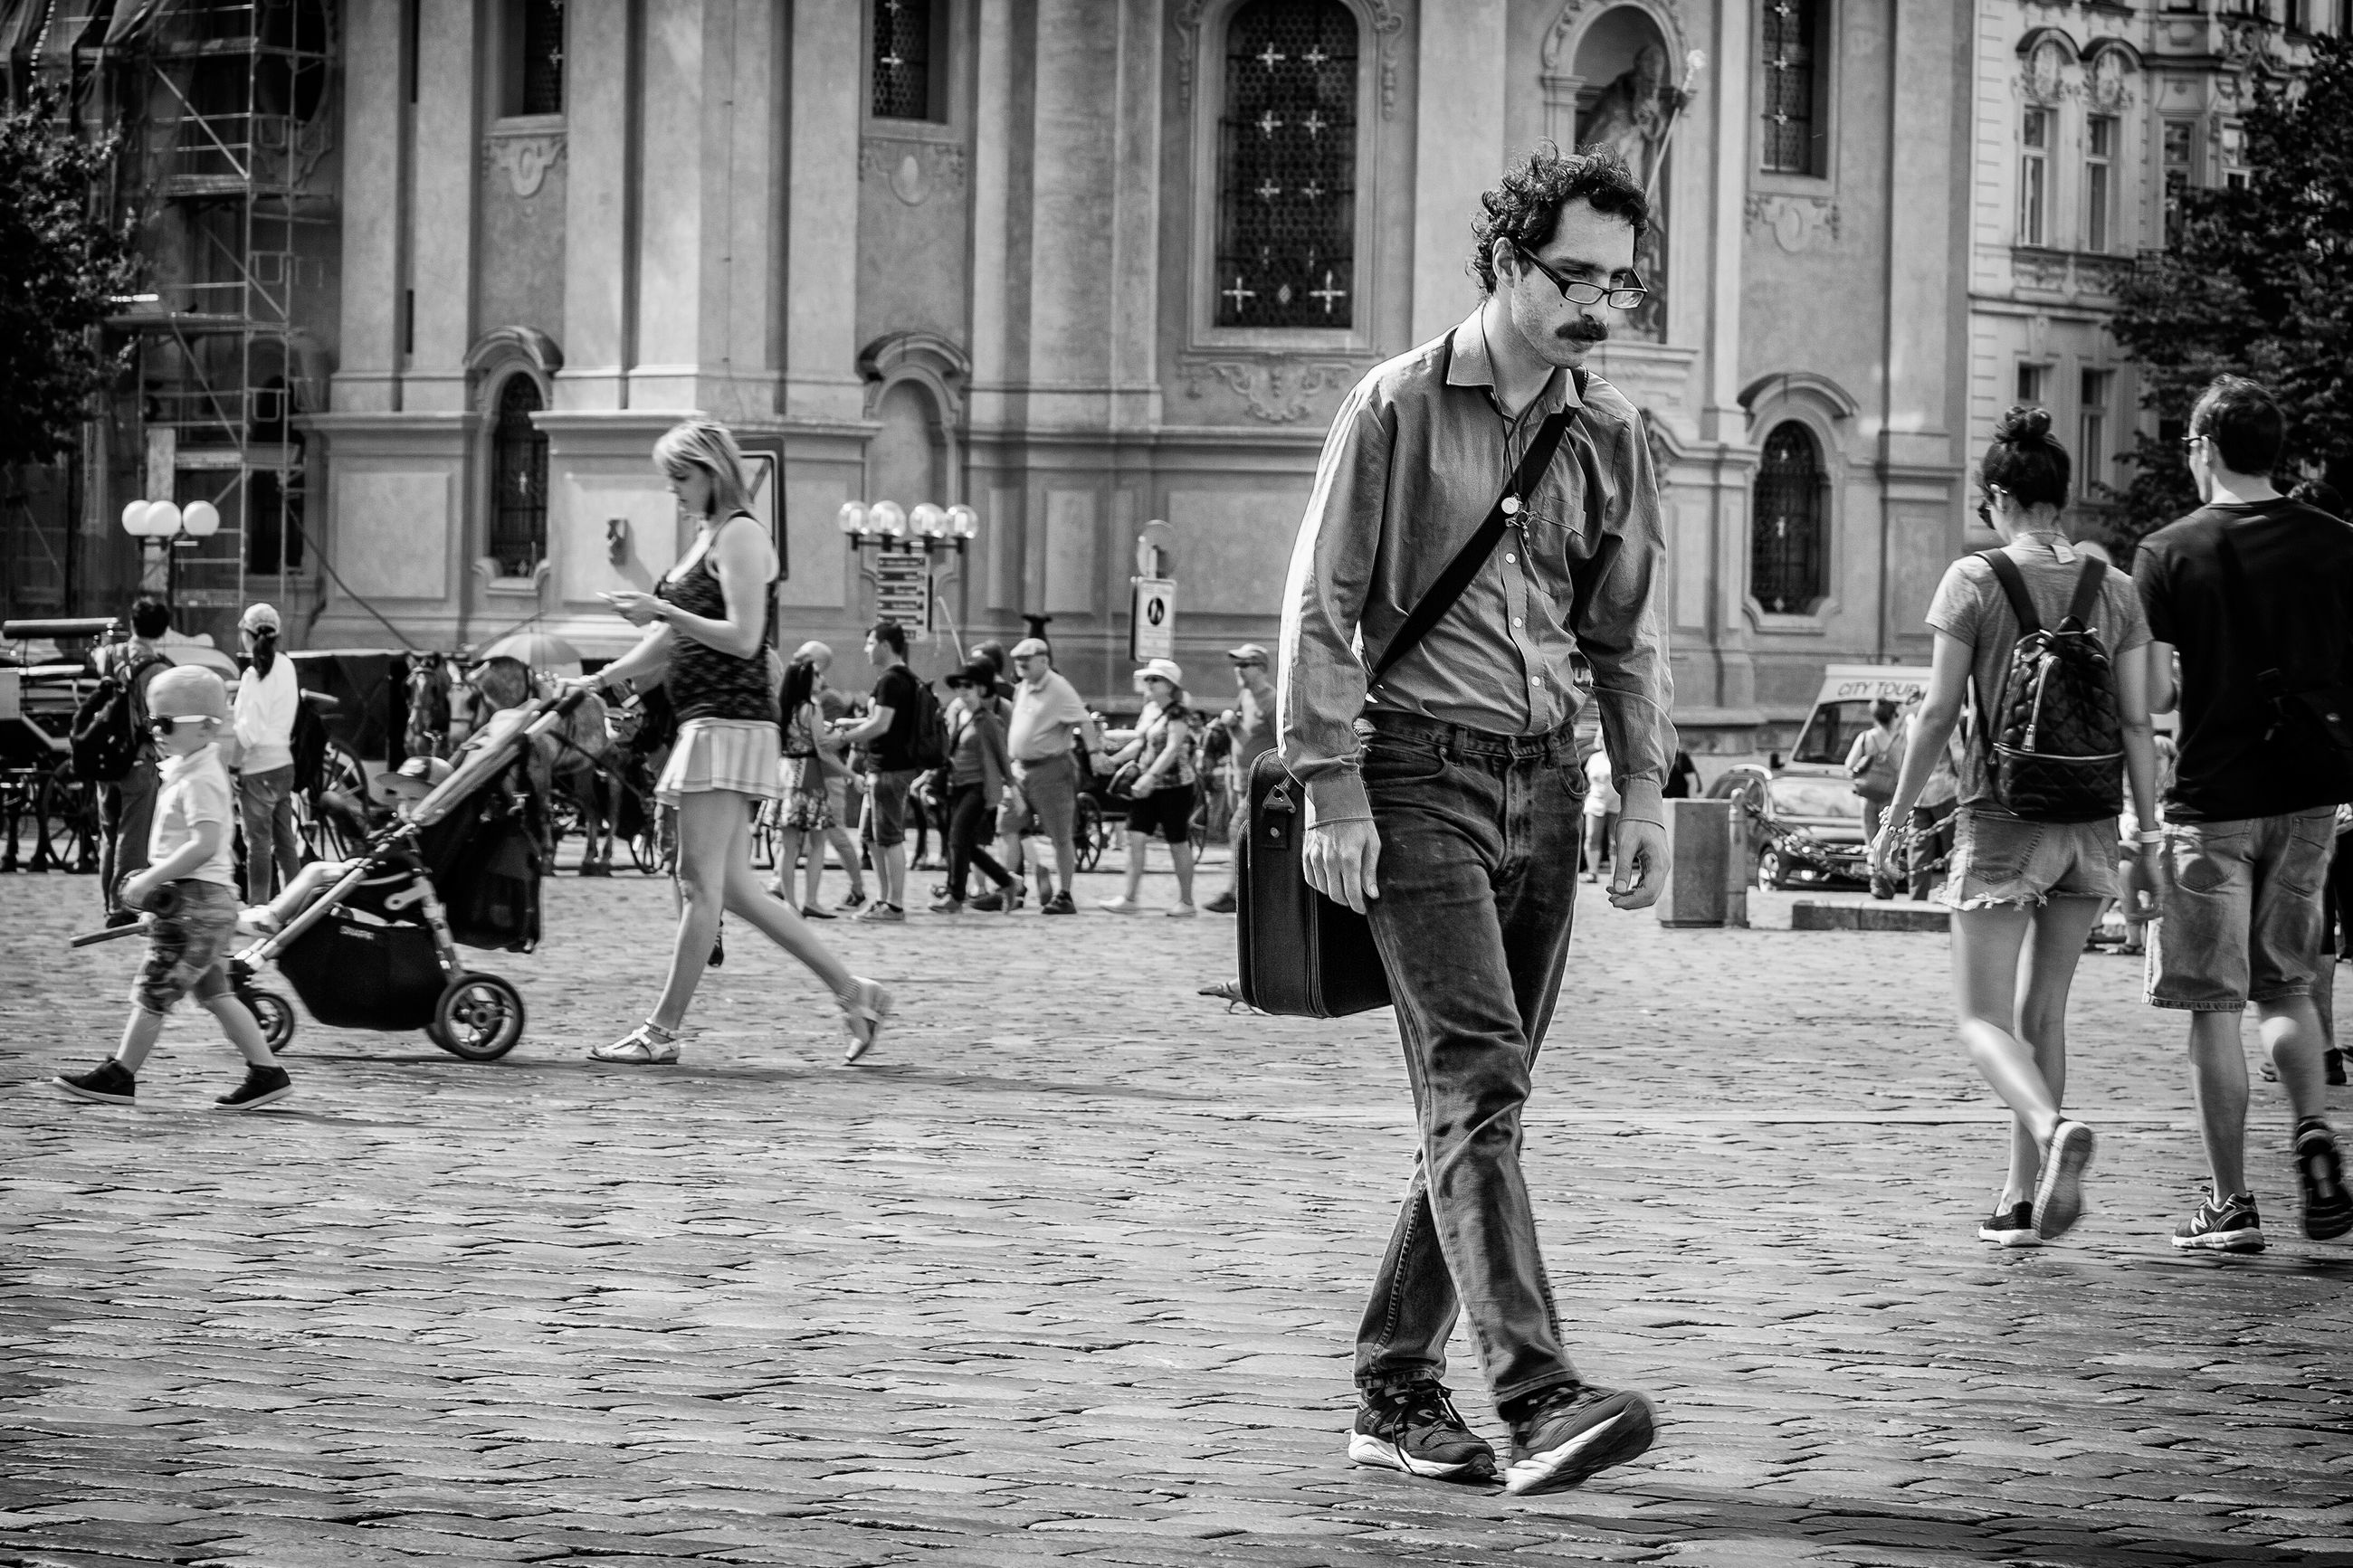 building exterior, street, city, architecture, built structure, men, person, lifestyles, walking, city life, large group of people, leisure activity, full length, casual clothing, city street, sidewalk, day, incidental people, outdoors